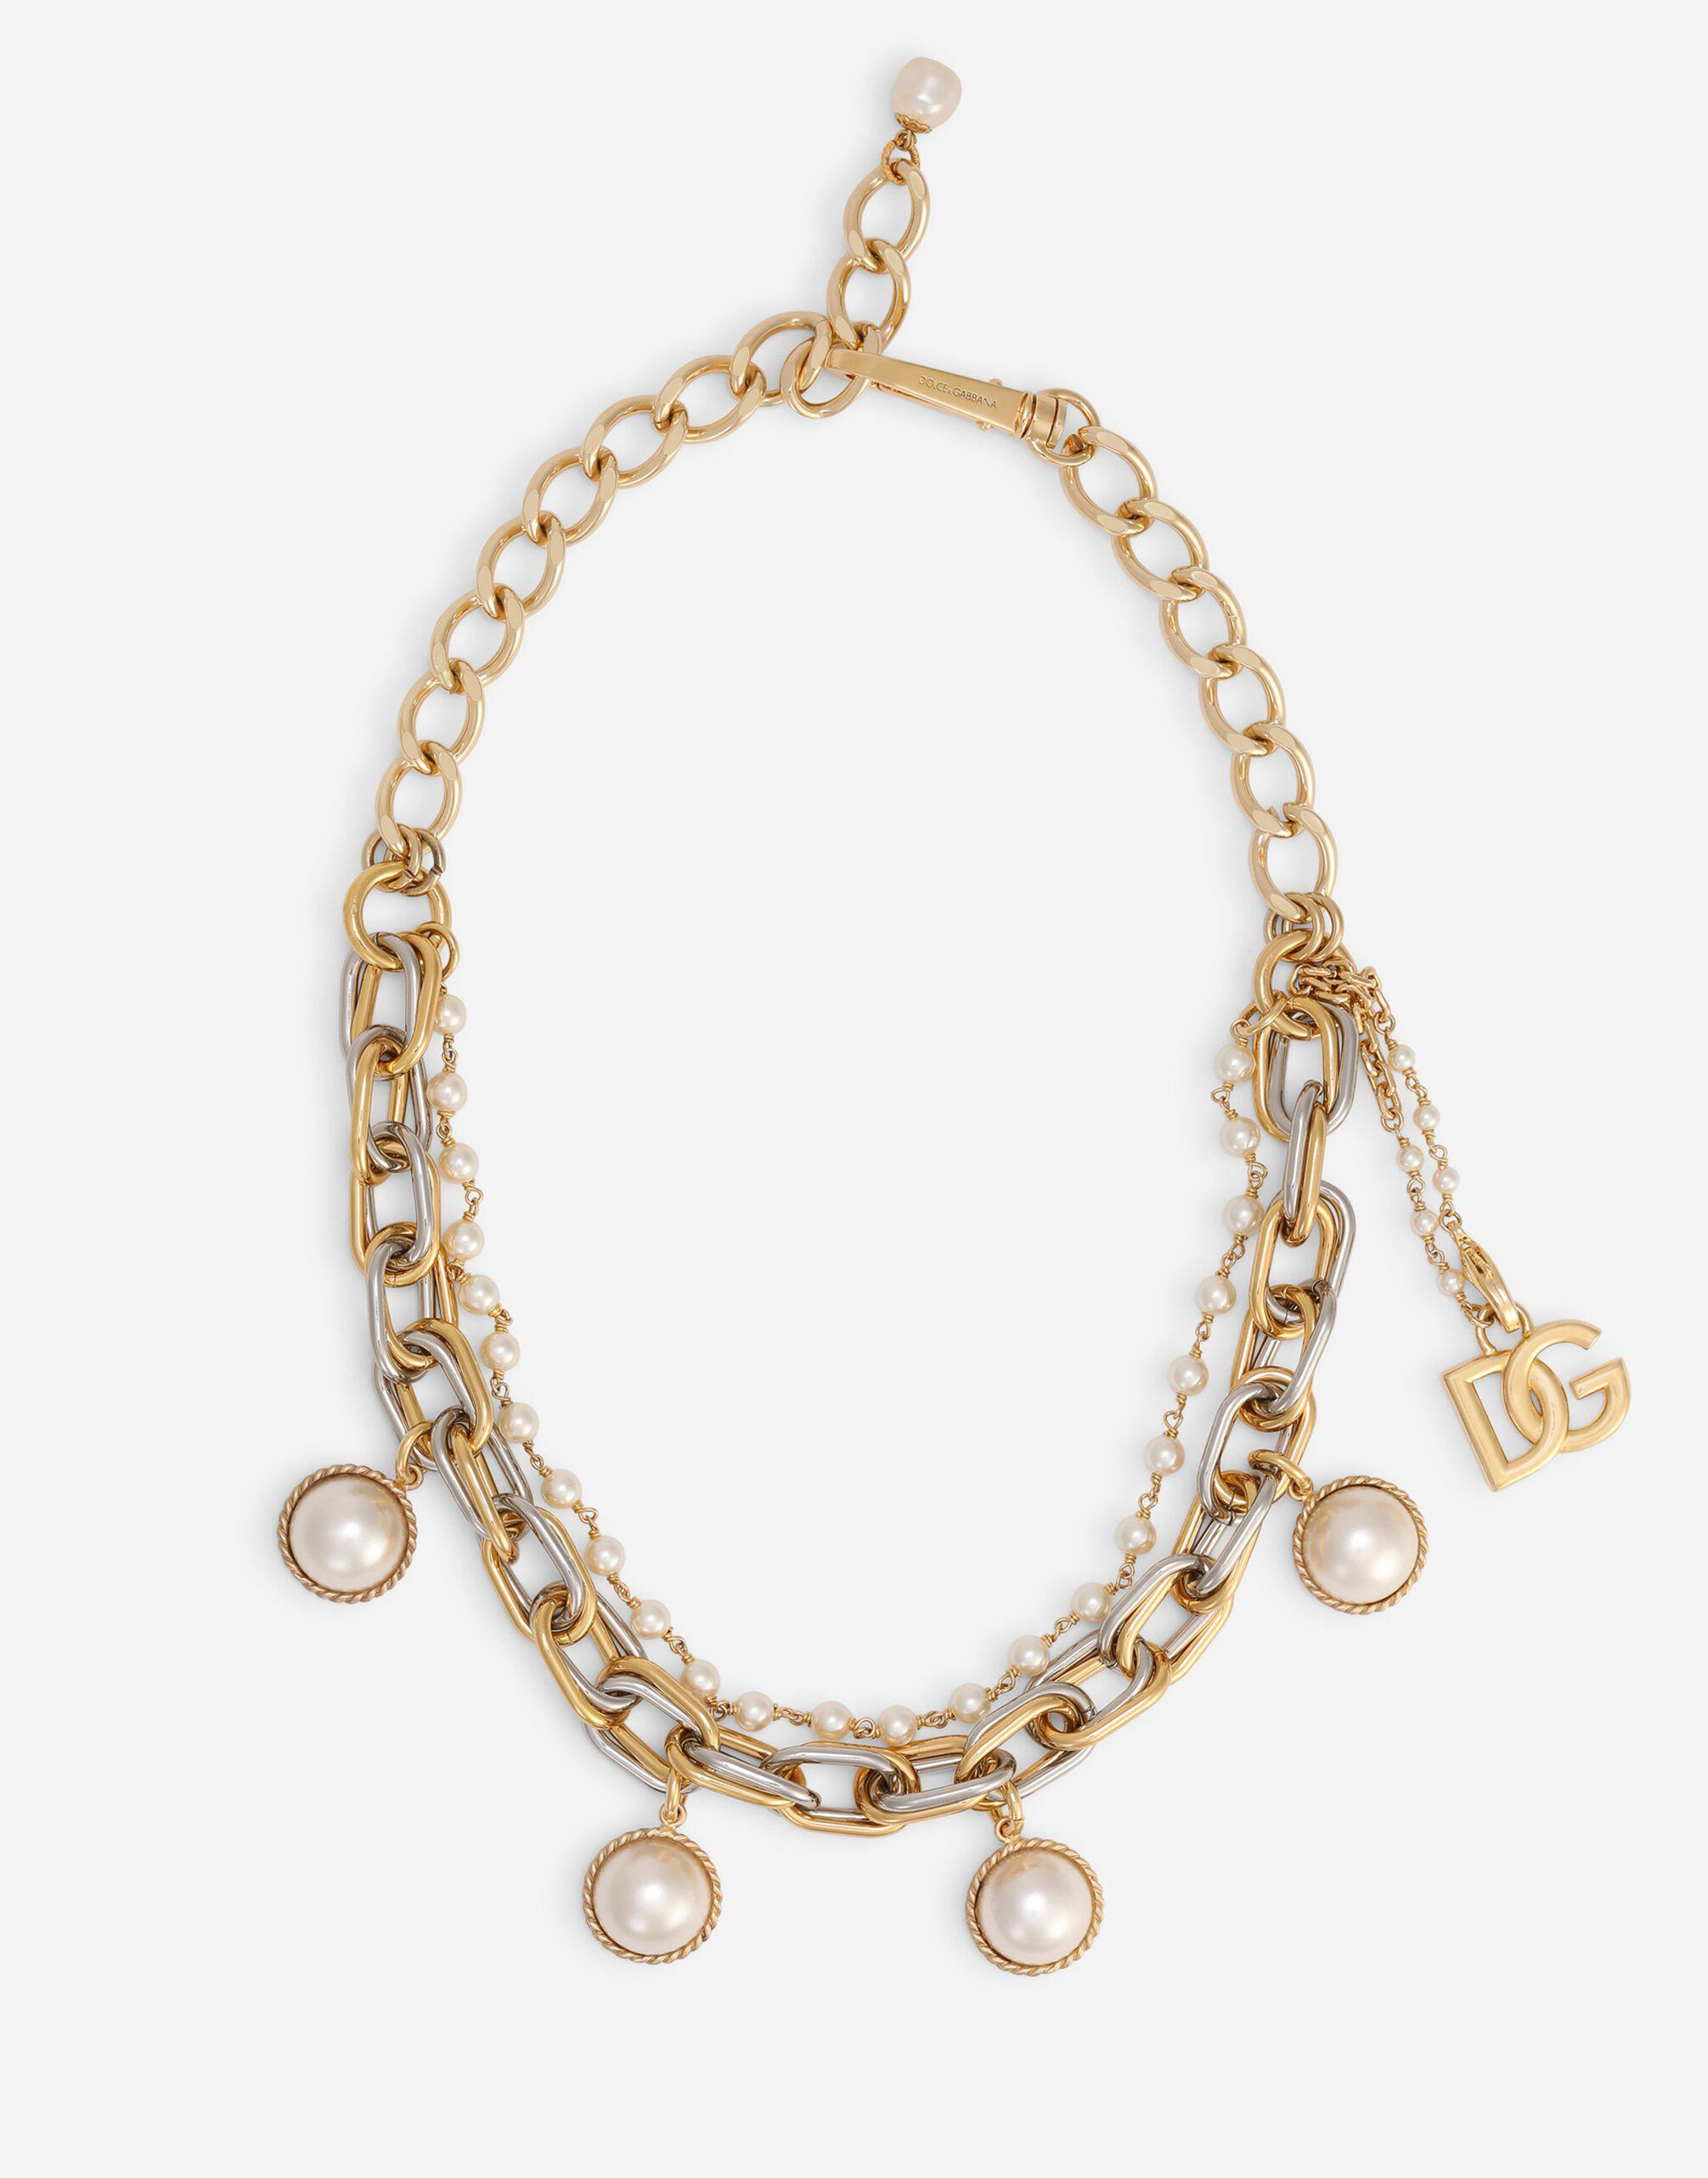 Double-chain necklace with pearl charms